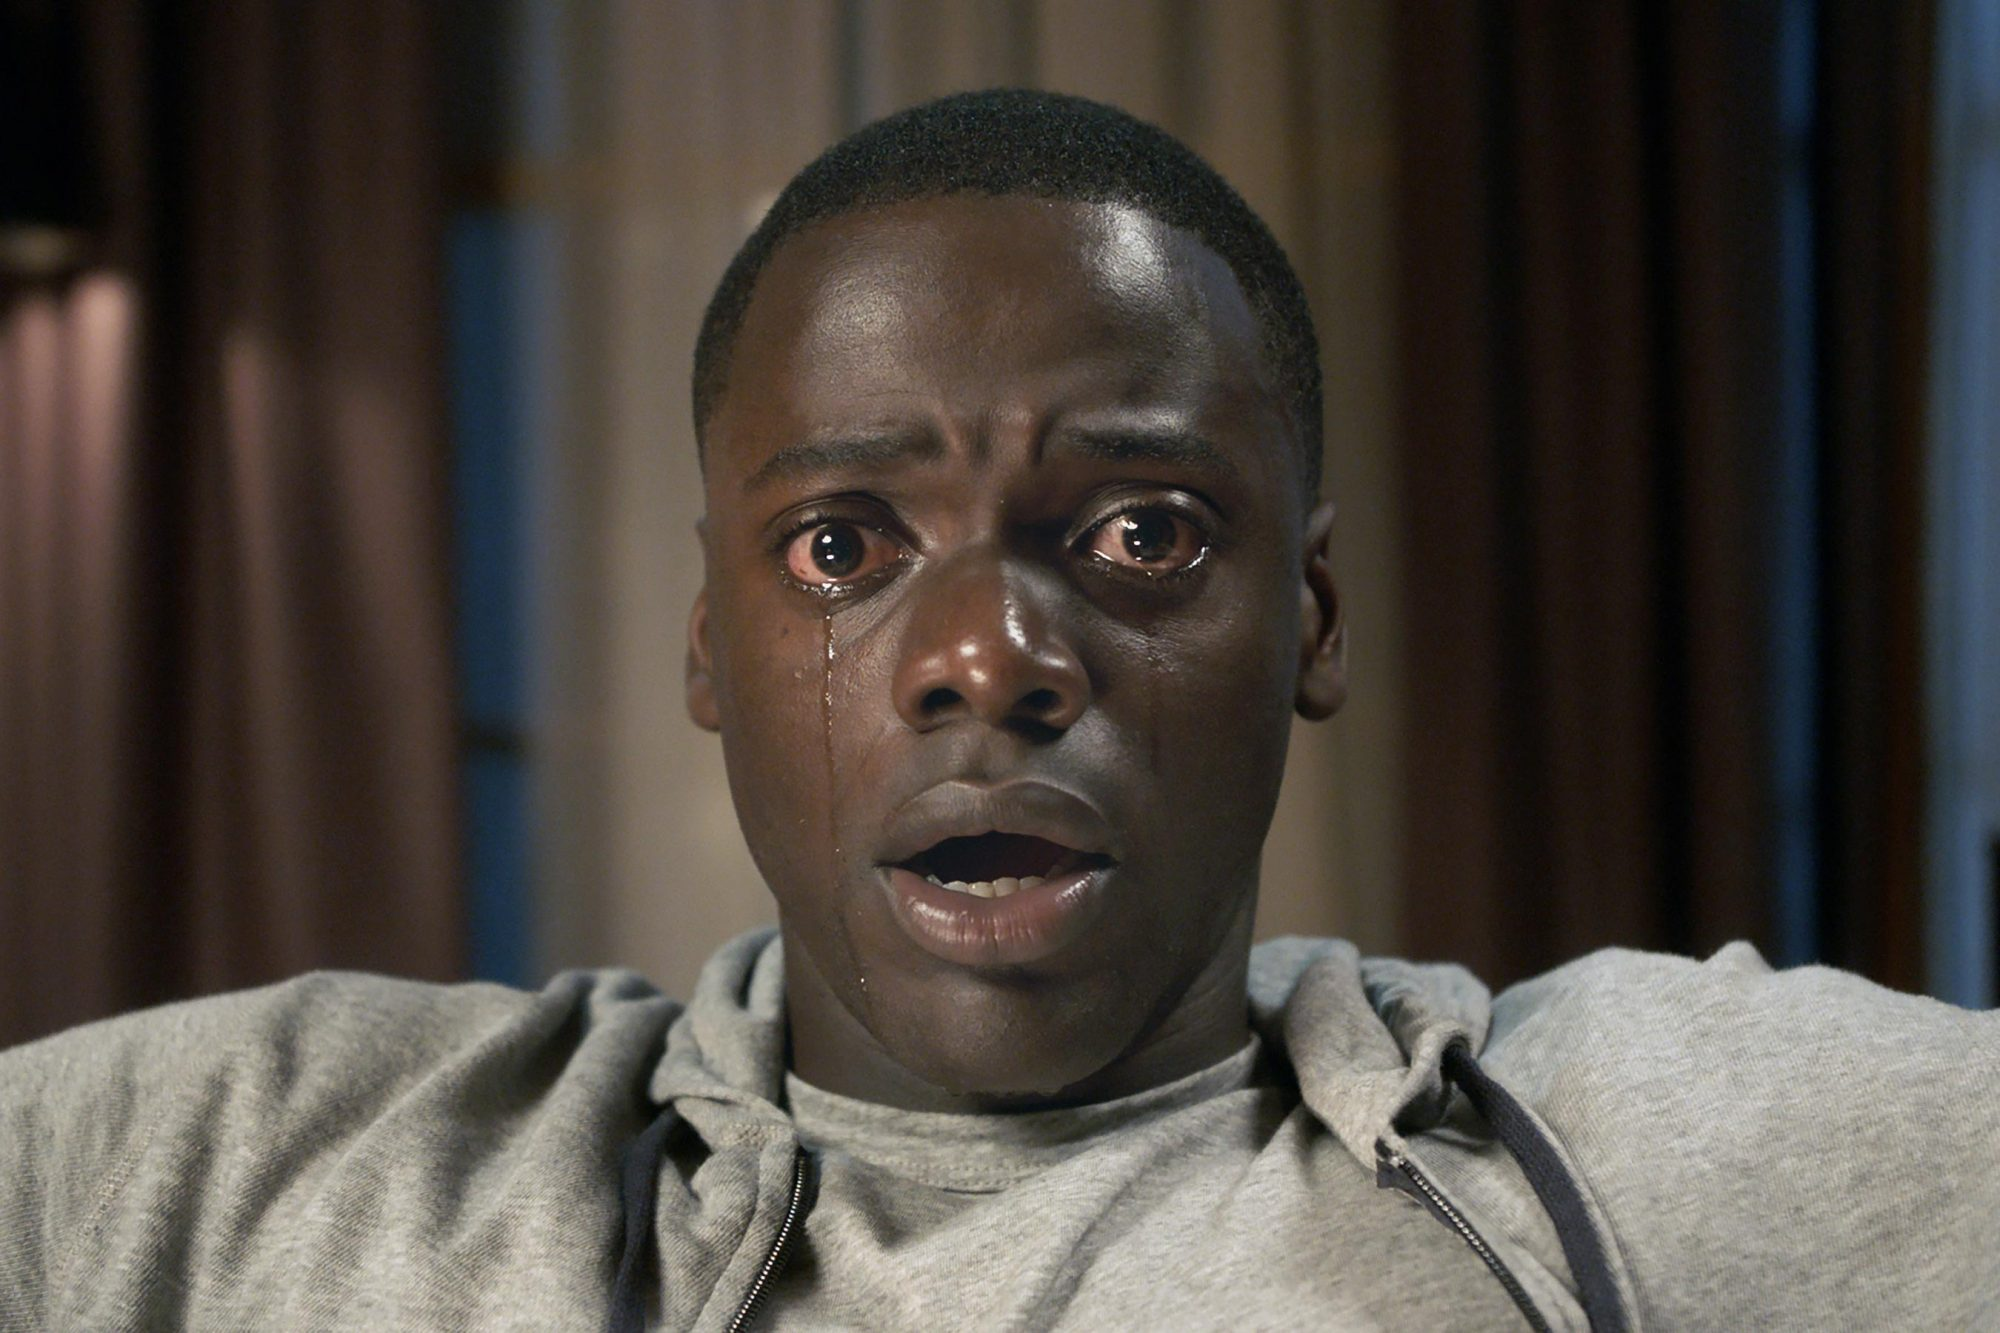 Get Out (2017)DANIEL KALUUYA as Chris Washington